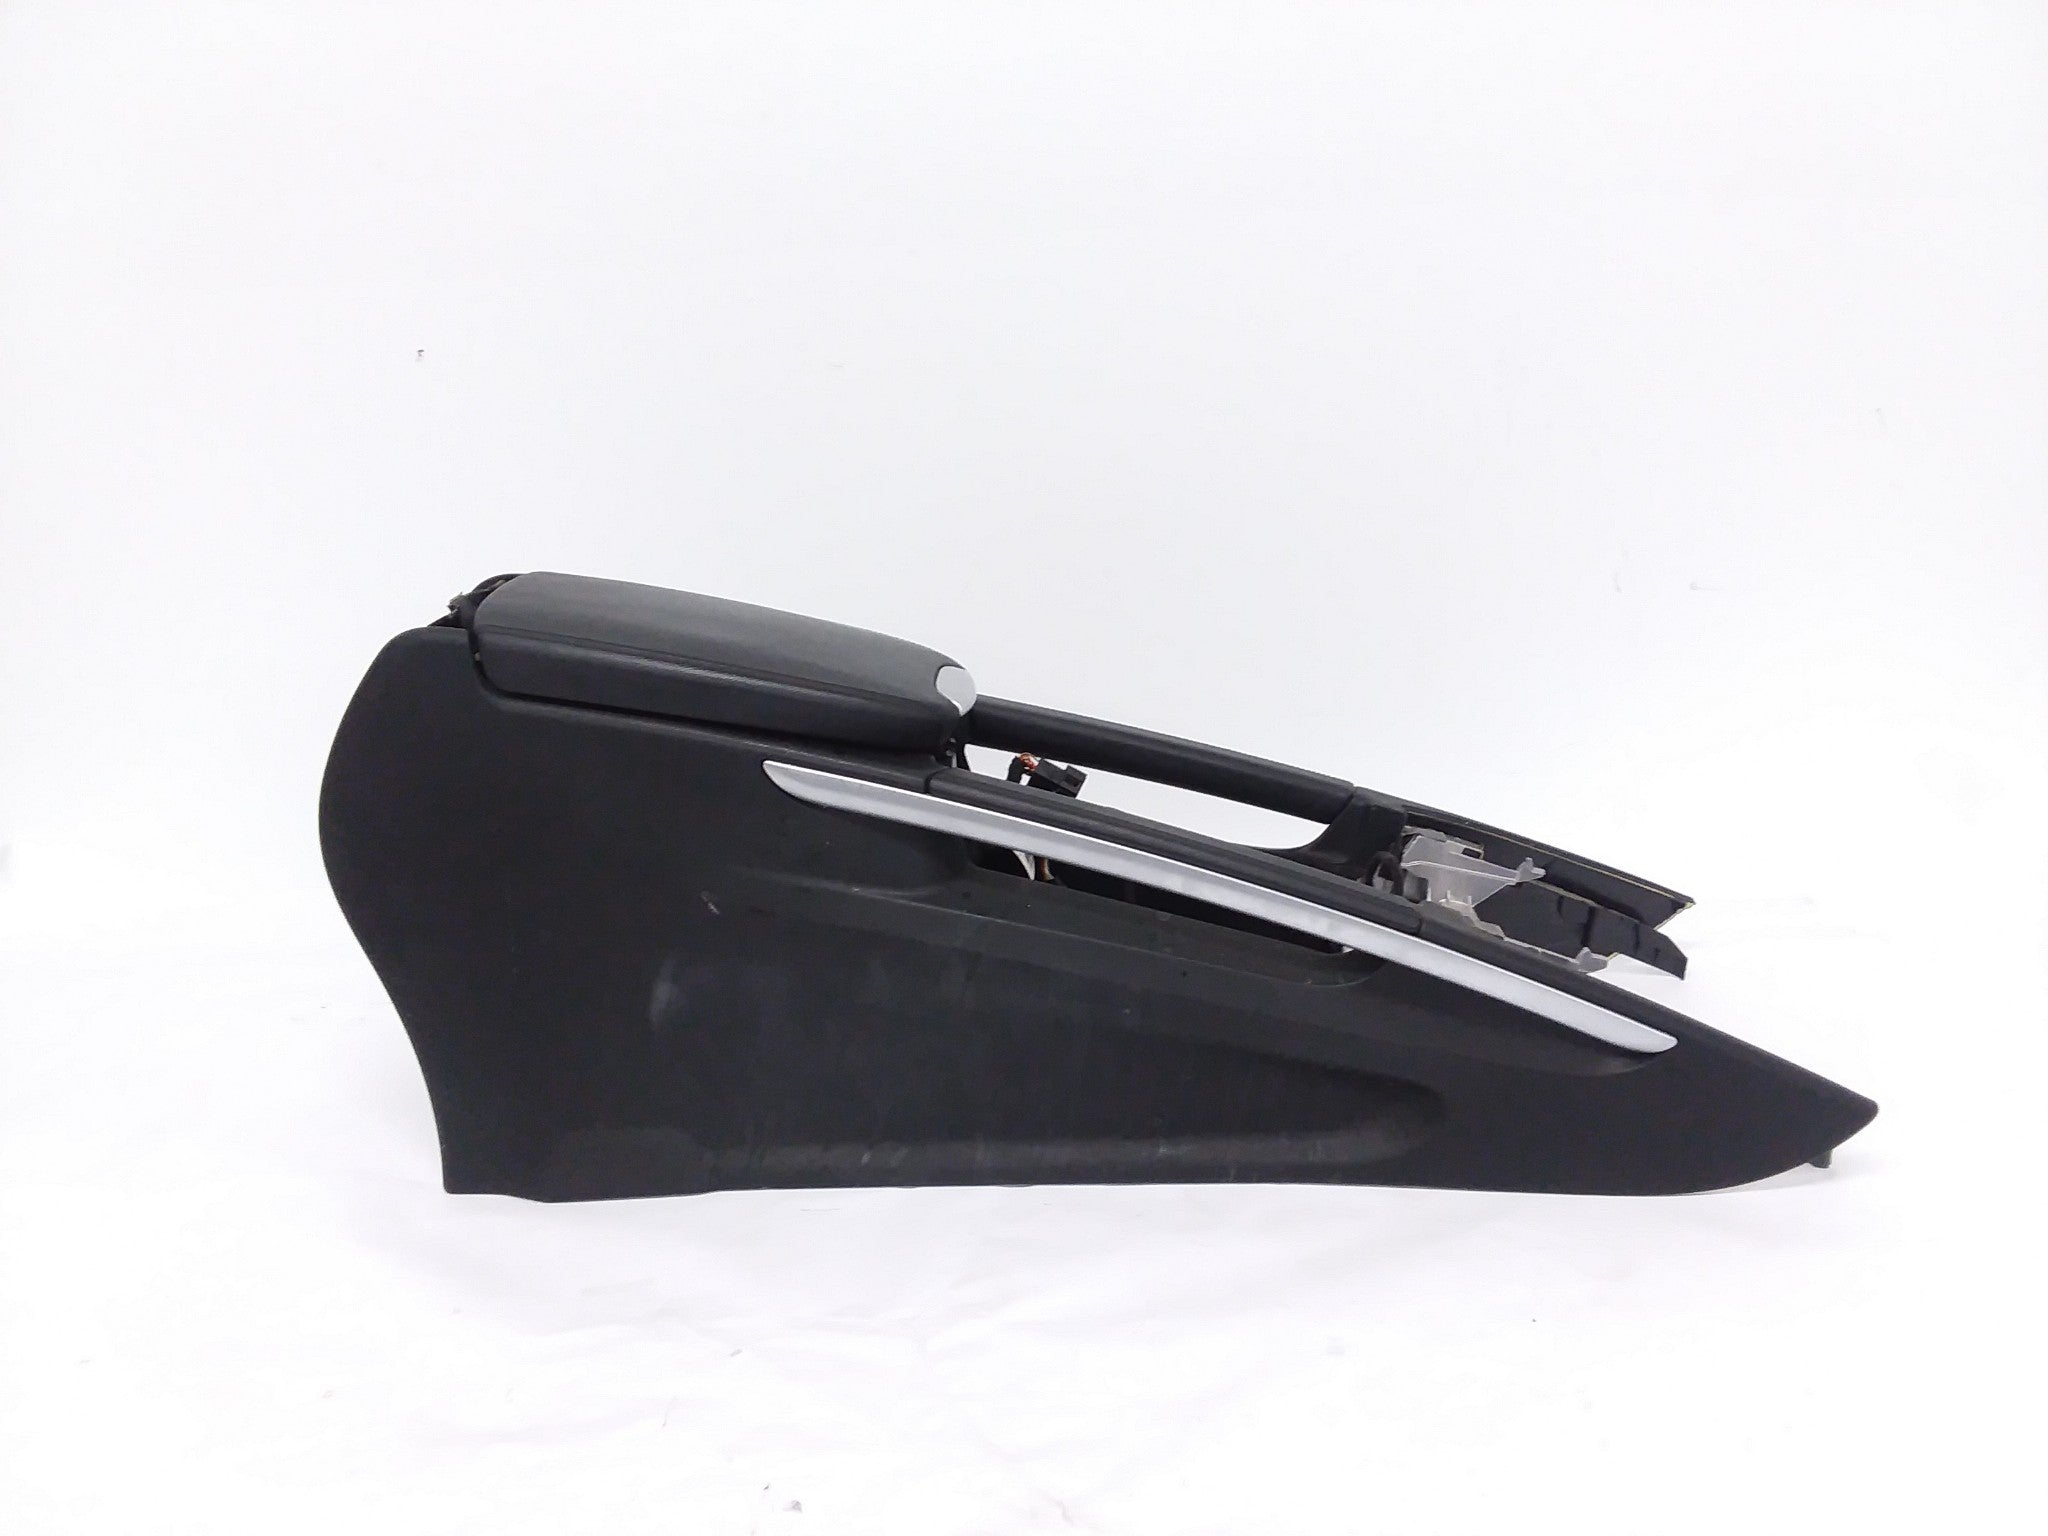 Mercedes W164 ML320 ML350 GL320 Center Console Storage Compartment Arm Rest Lid